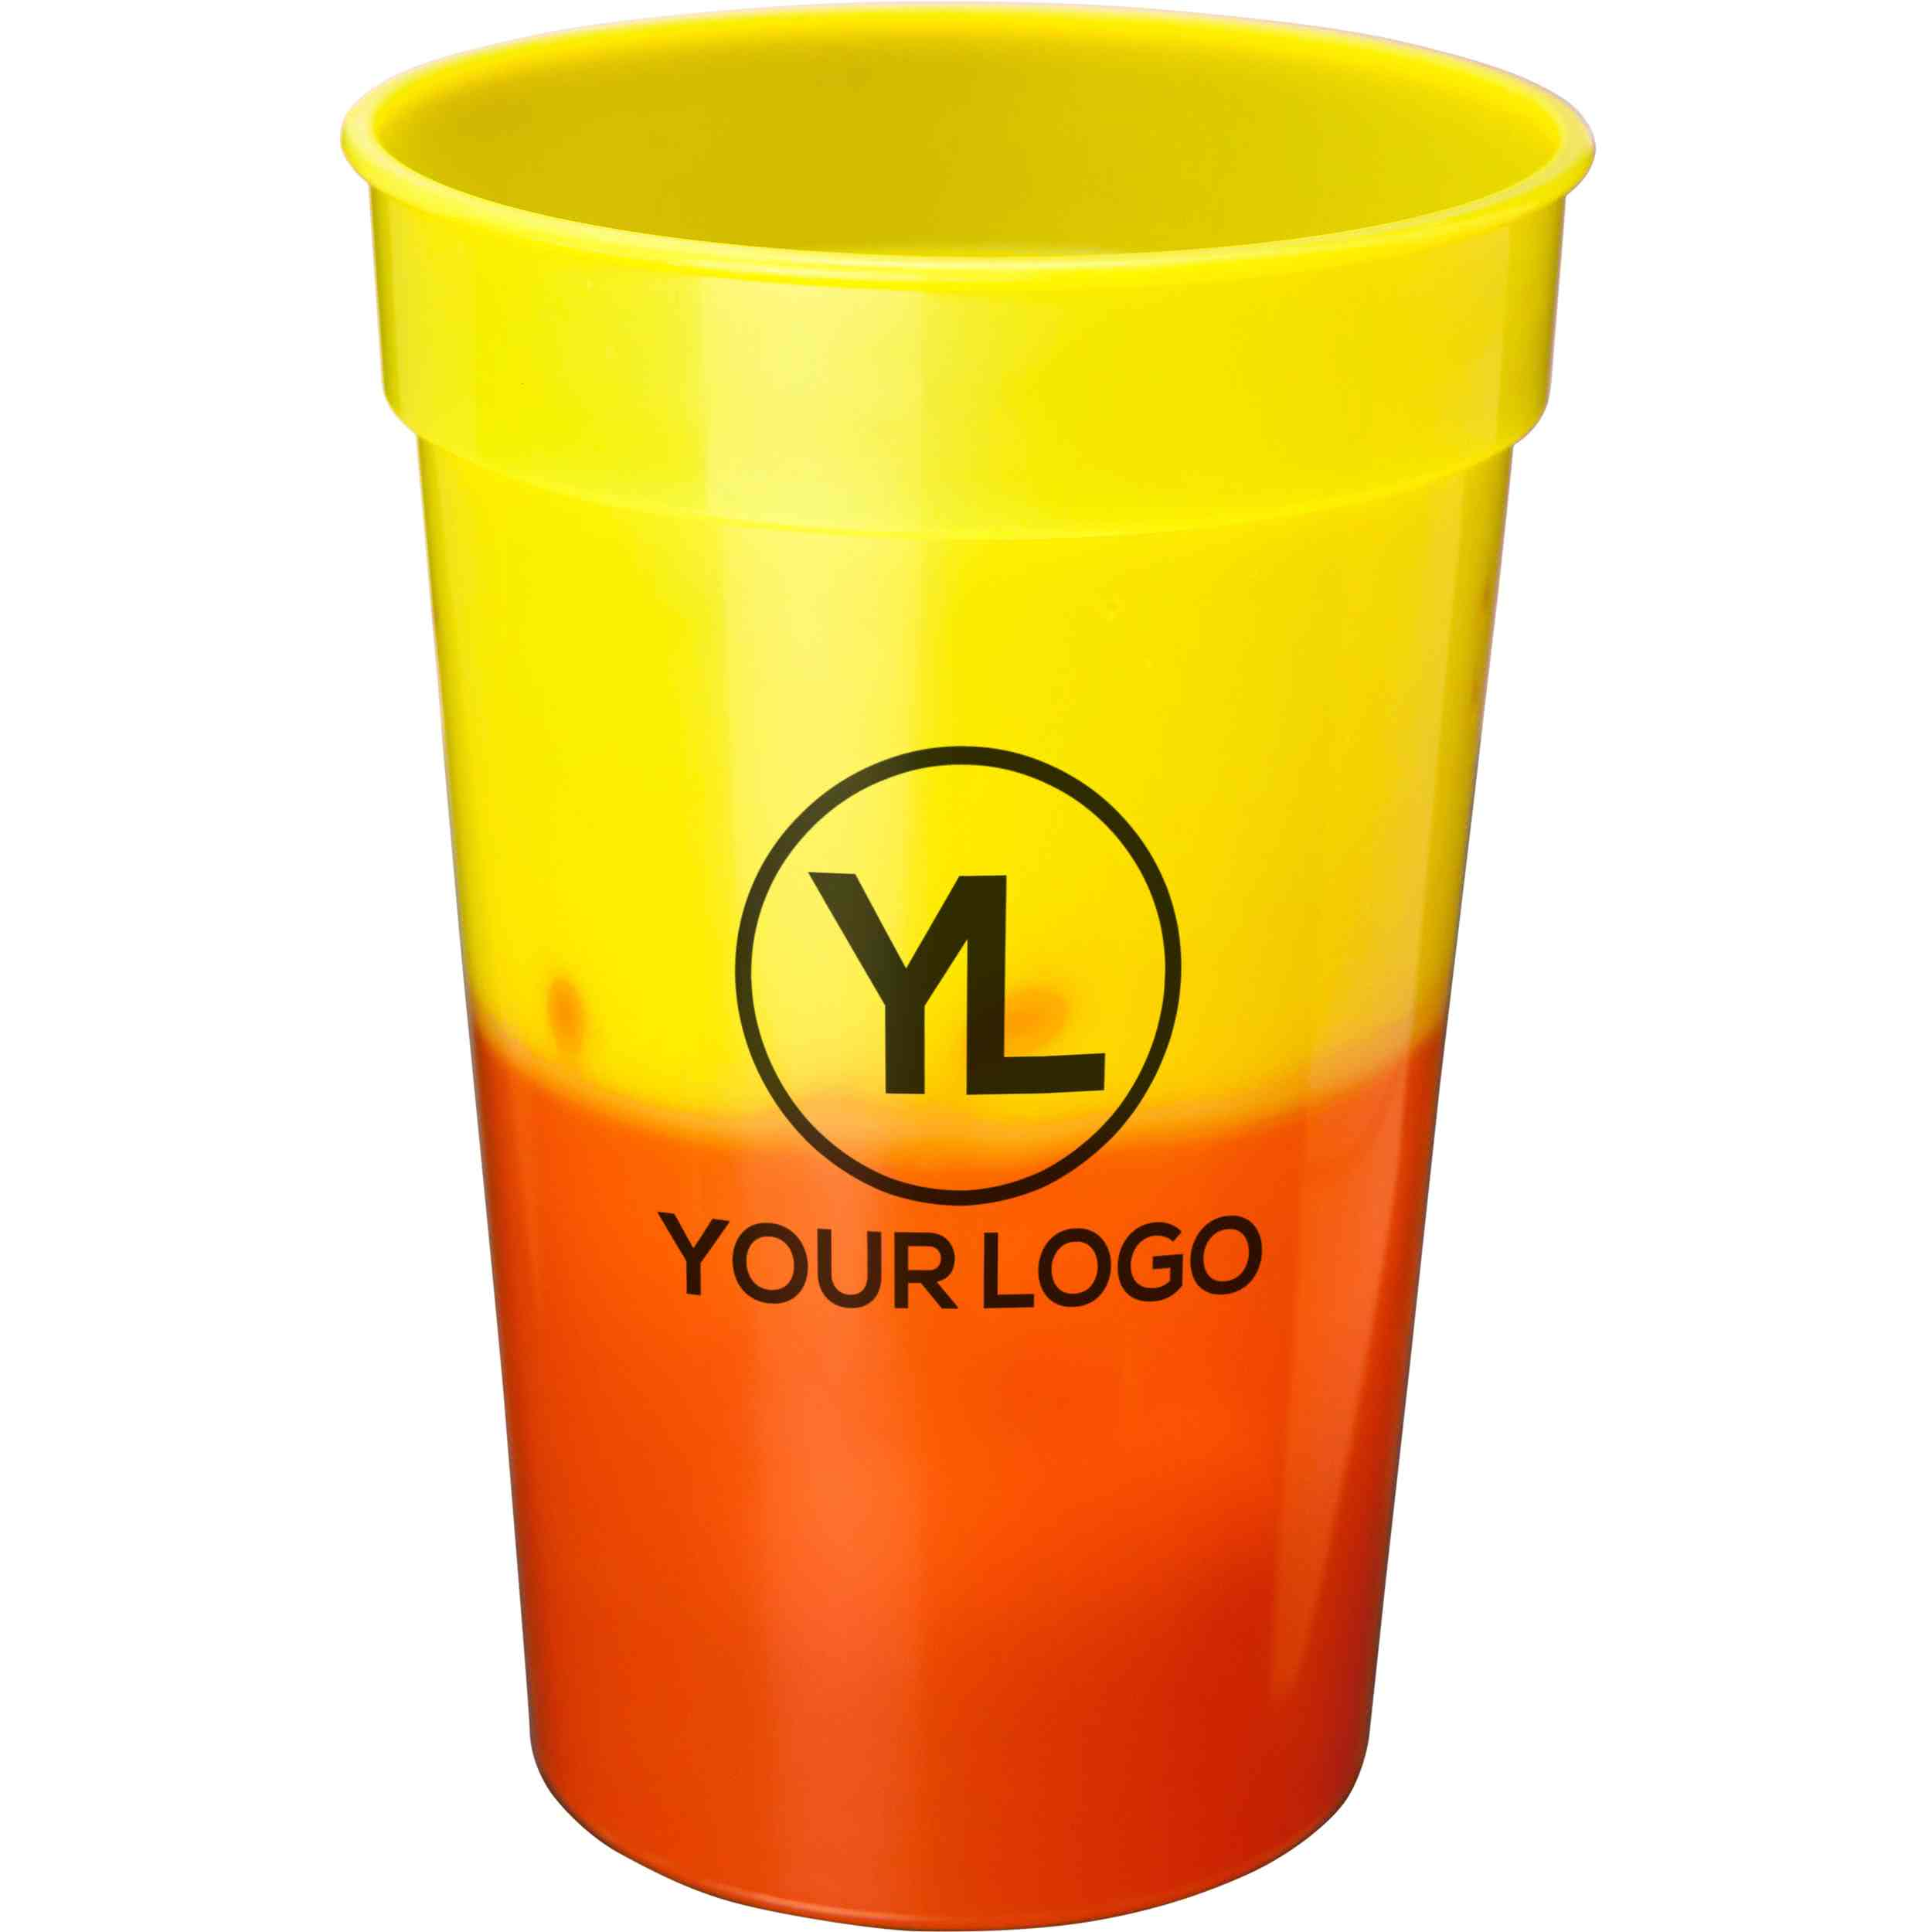 Promotional 17 Oz. Mood Stadium Cups with Custom Logo for $0.45 Ea.